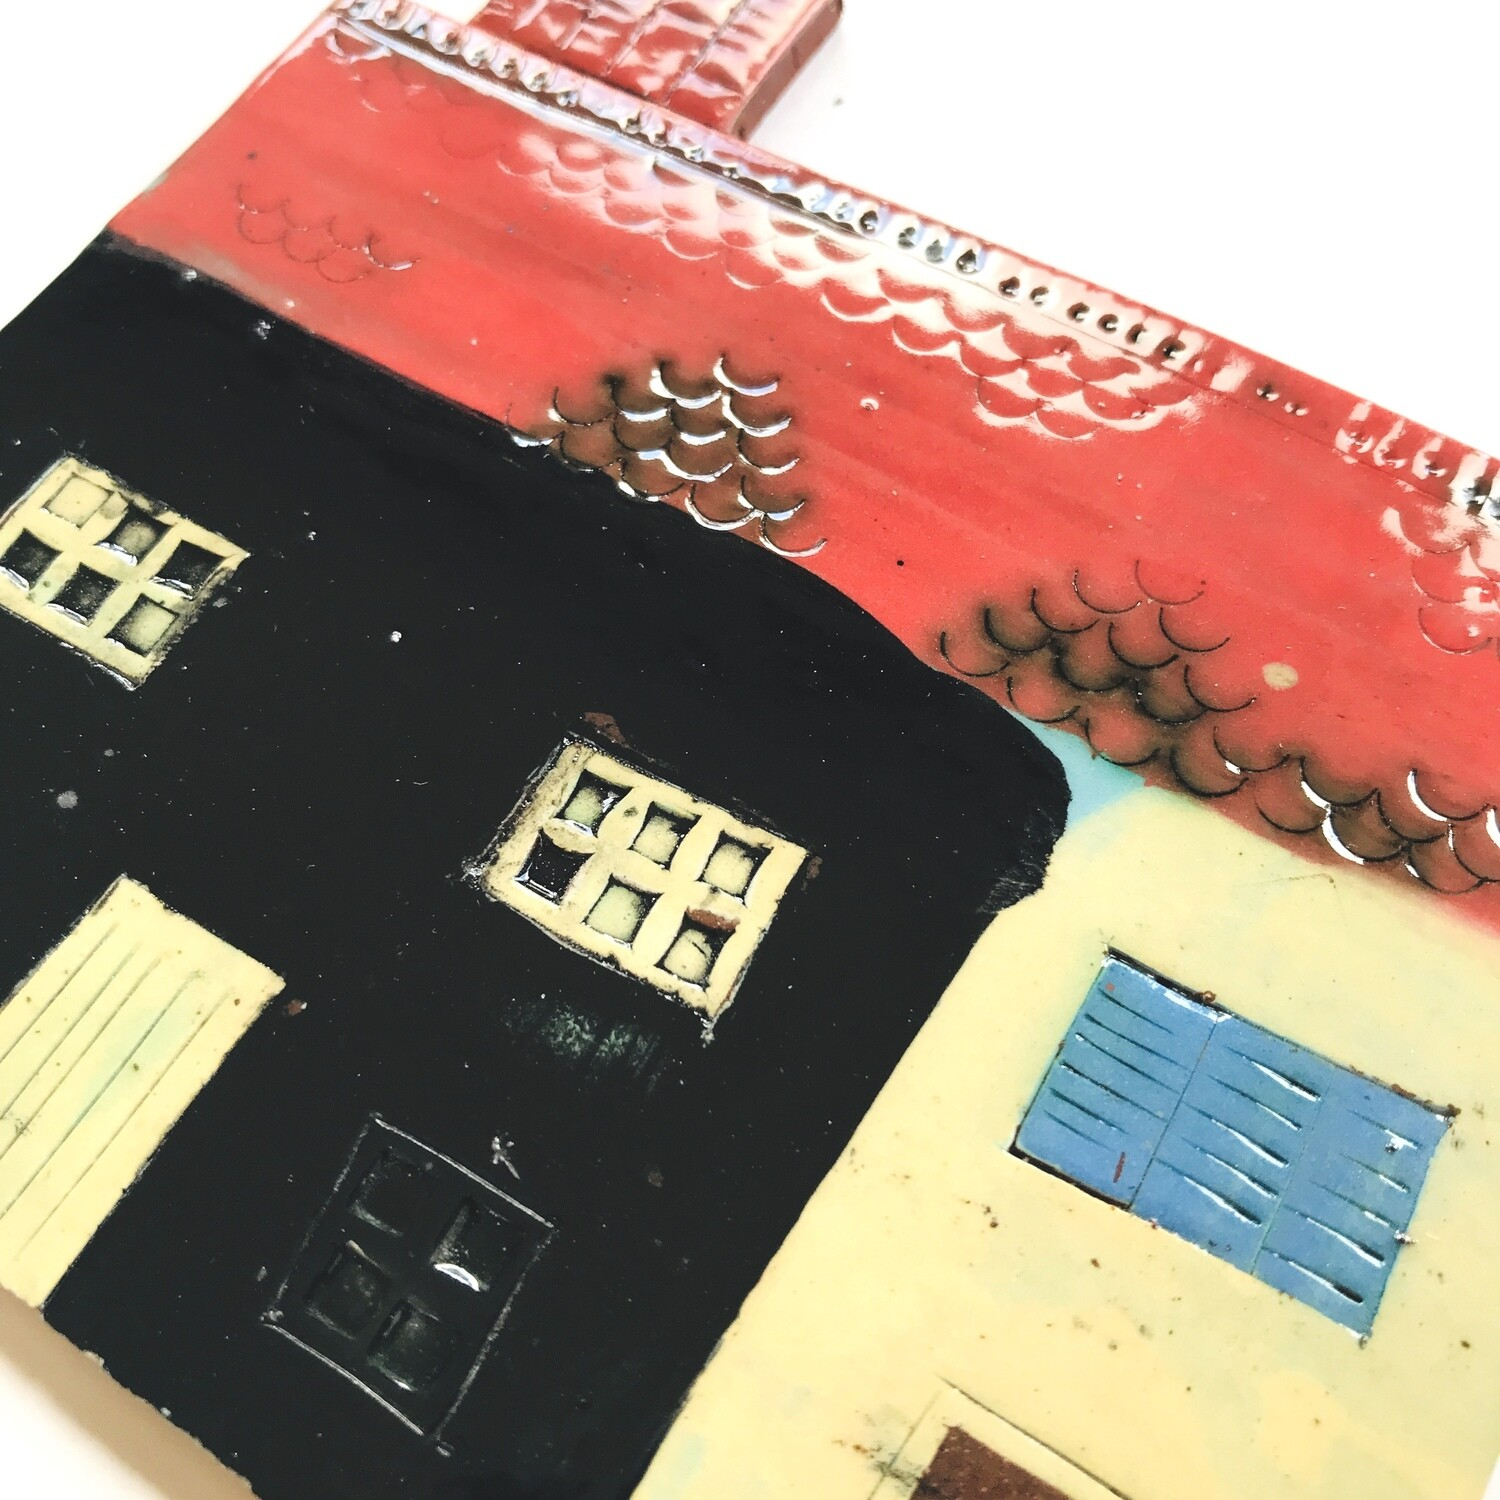 Grand house and side barn with bright red roof and chimney!  Measurements from left to right 130 x 120mm x 4mm, 2 pieces